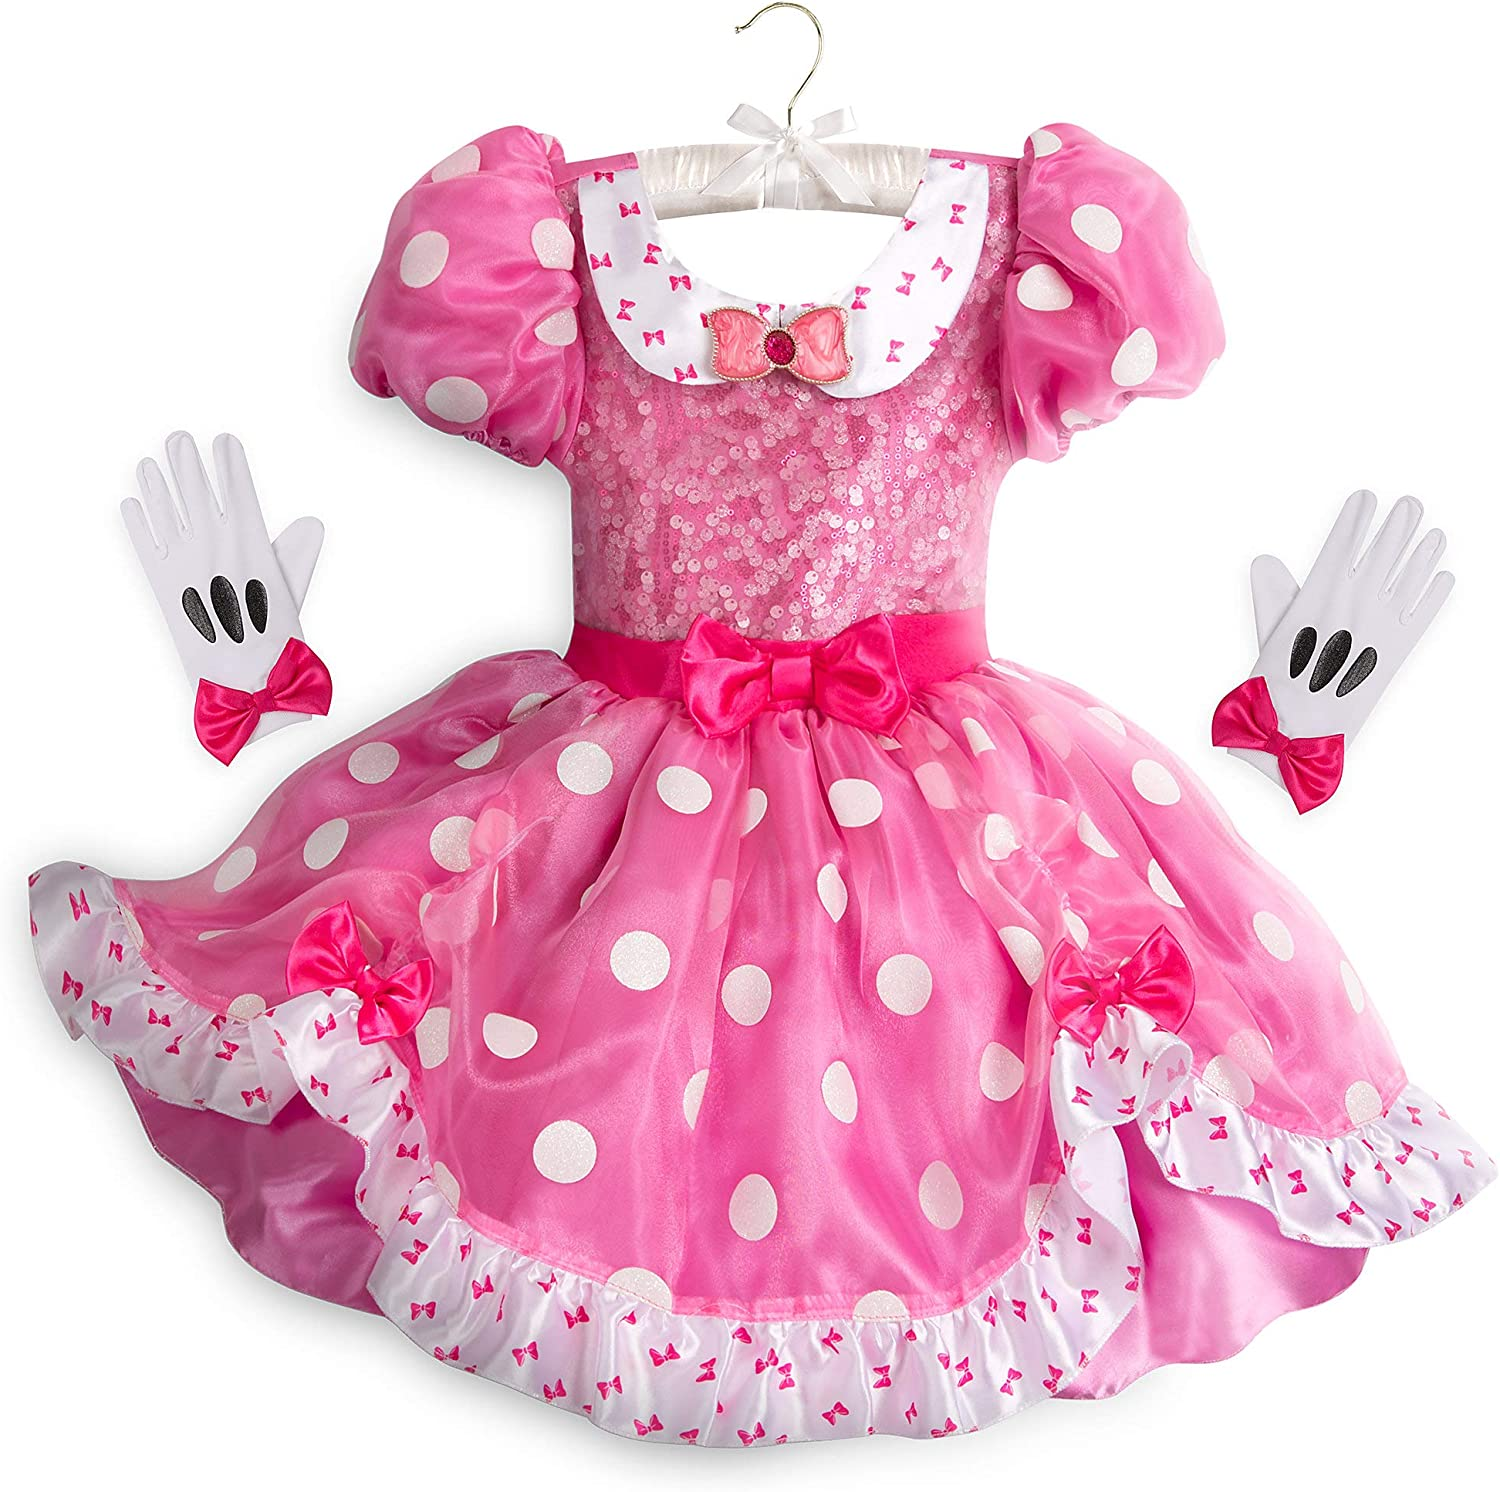 Disney Minnie Mouse Costume Ranking TOP7 Pink Kids for - Award-winning store